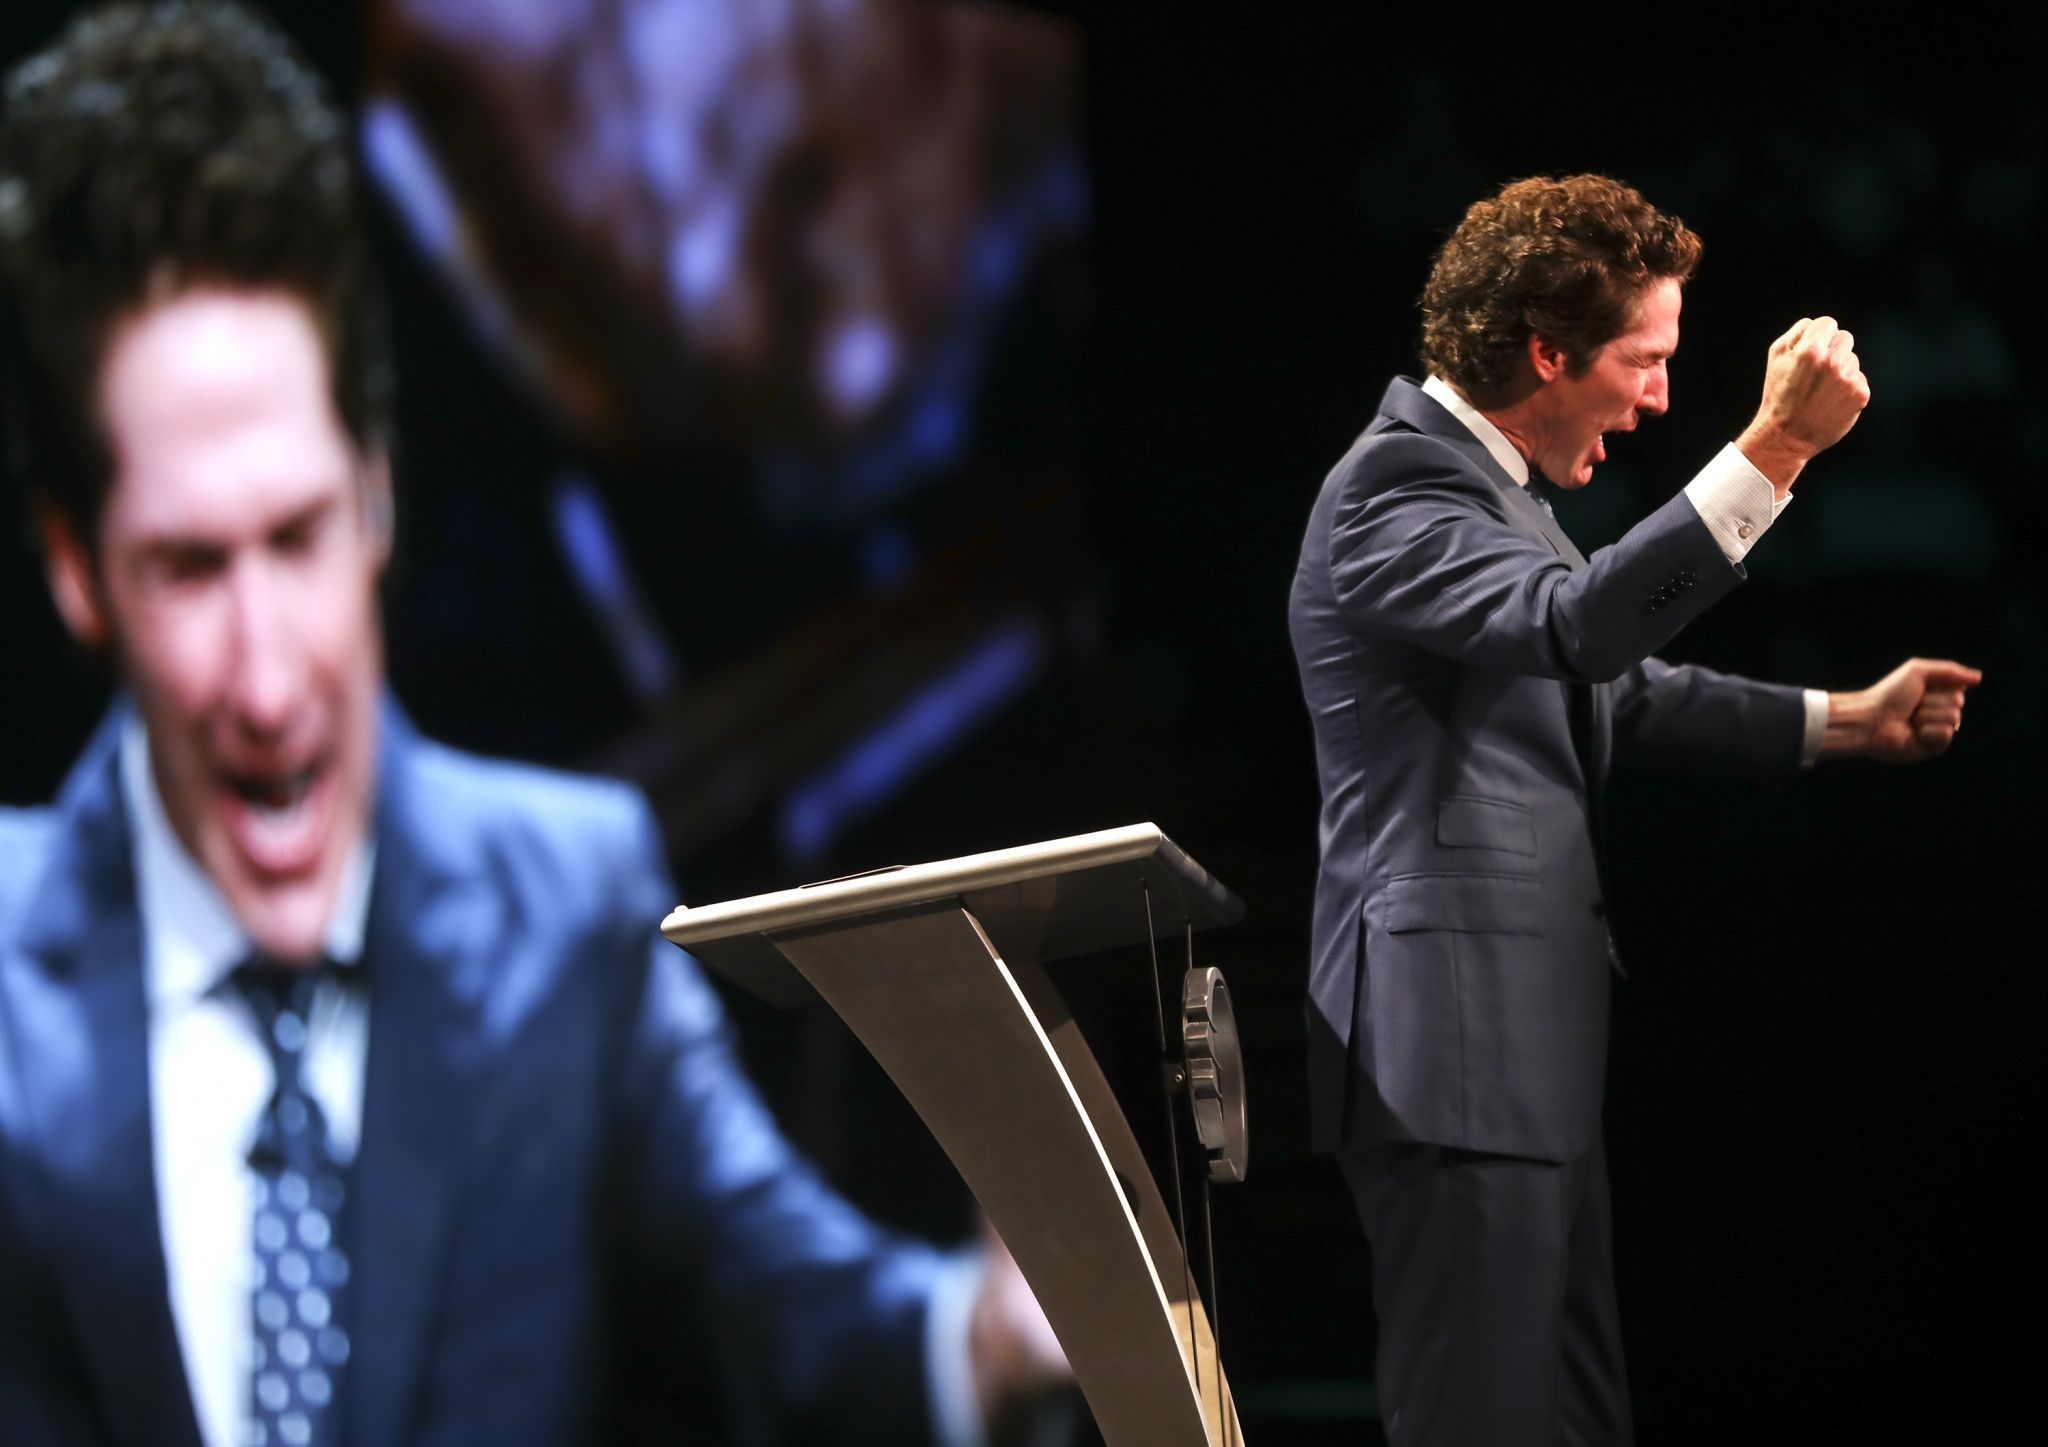 'Prosperity preachers' like Joel Osteen can cause risky financial behavior, university report says